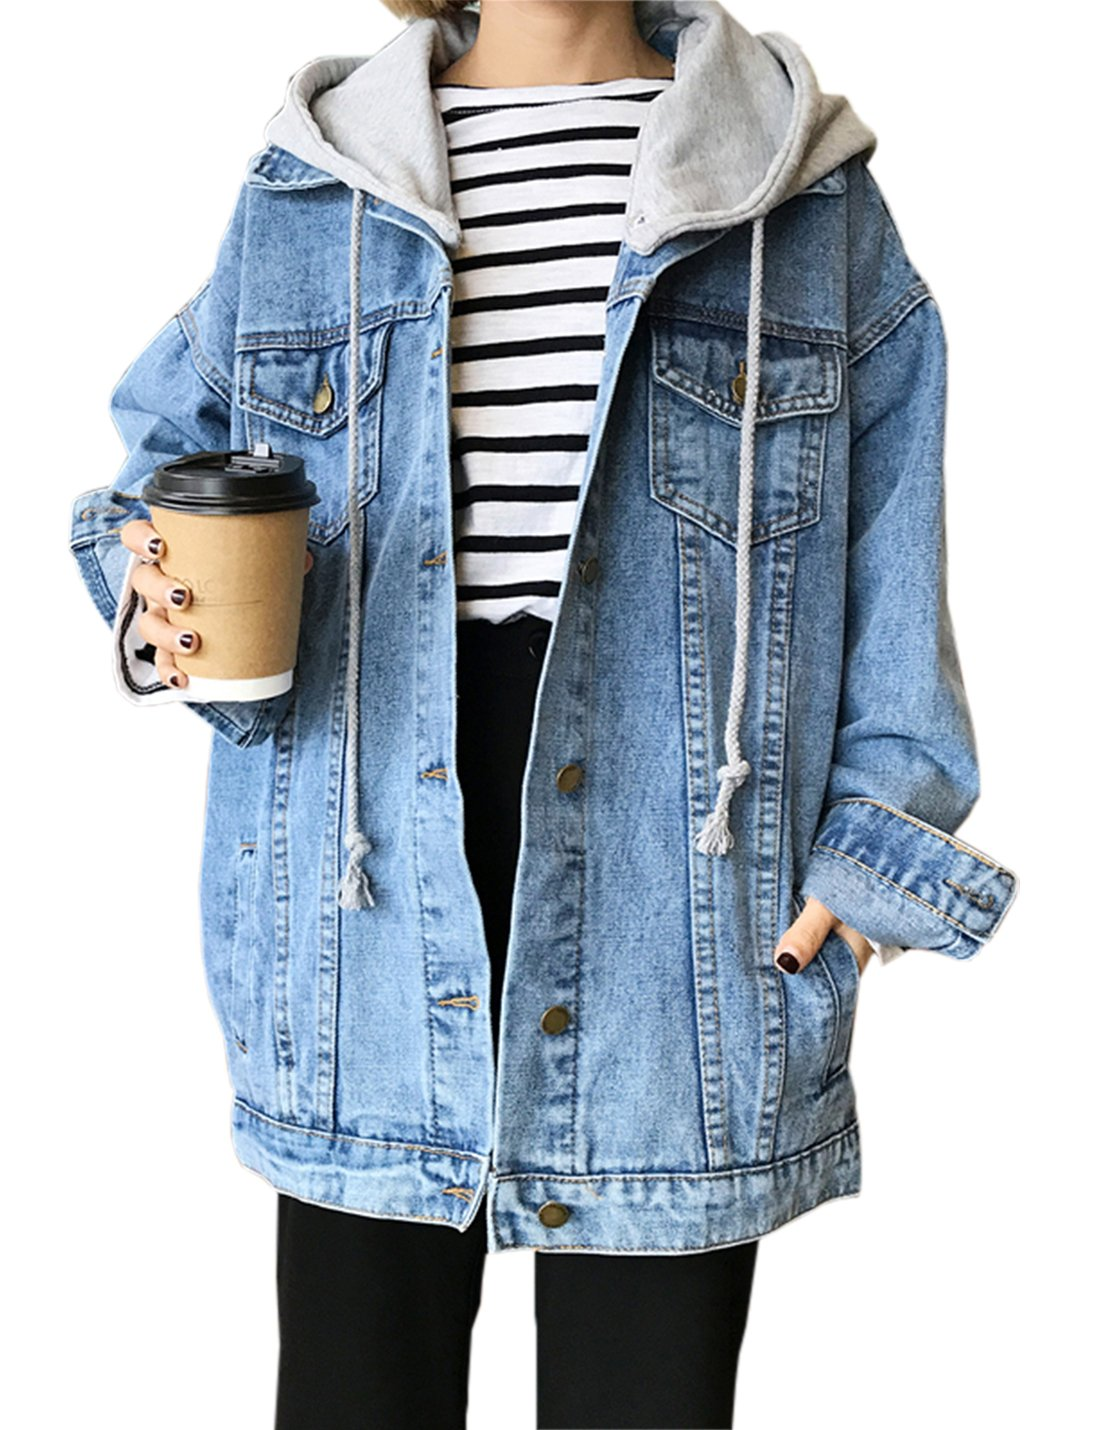 Gihuo Women's Drawstring Pockets Boyfriend Denim Jackets with Removable Hoodie (Light Blue, Small)